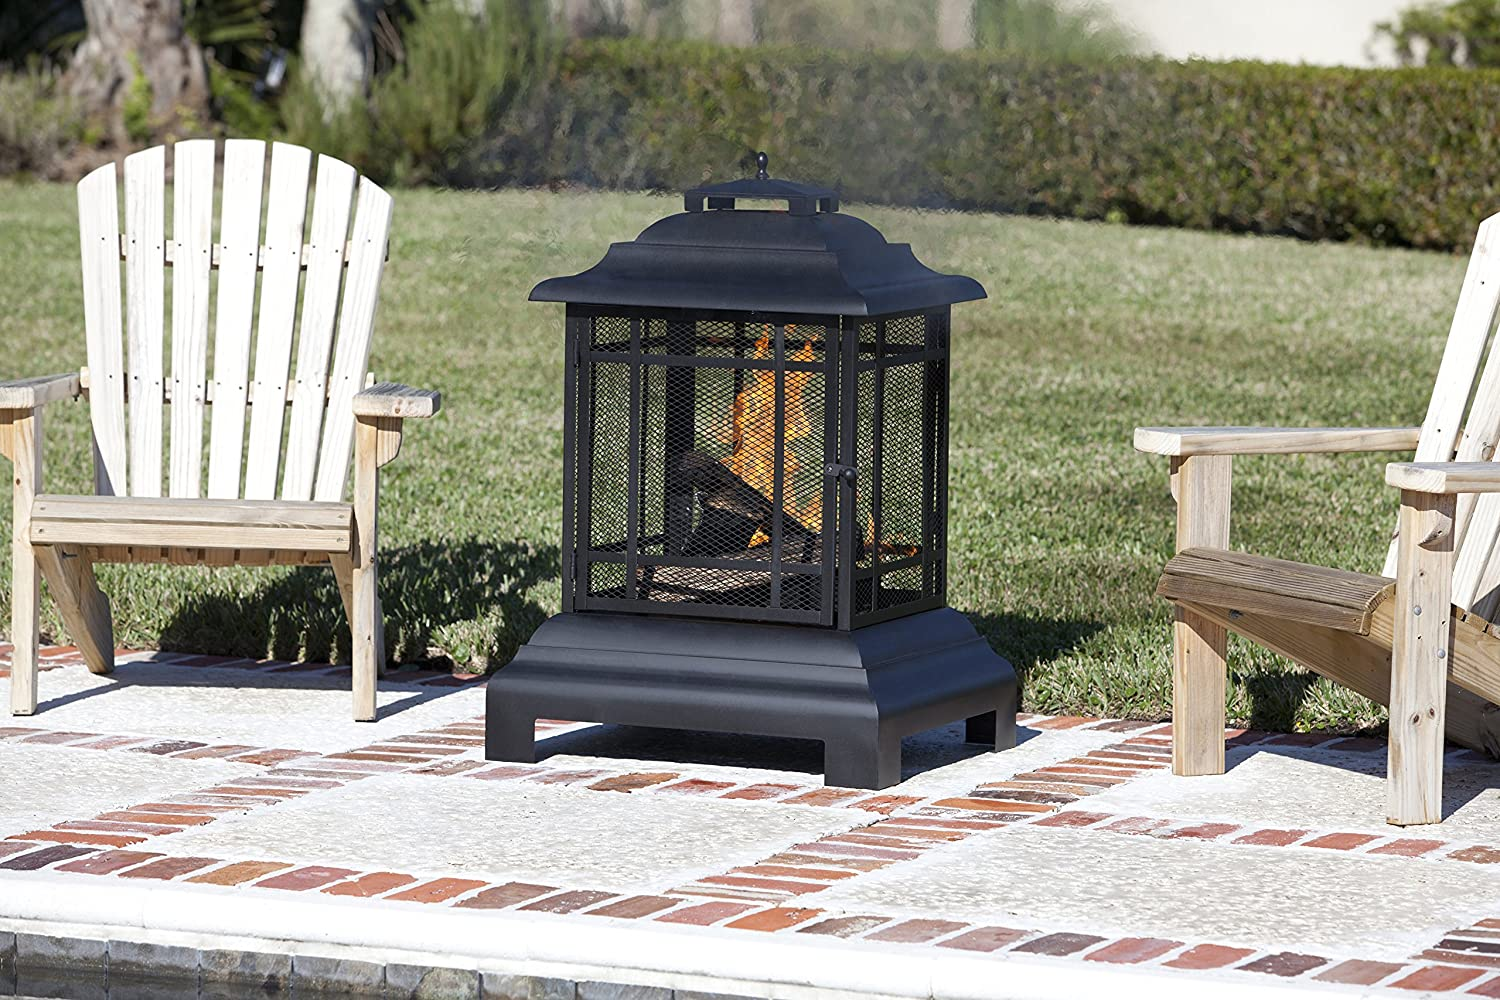 Amazon.com: Fuego sentido Rectángulo Pagoda Patio chimenea ...